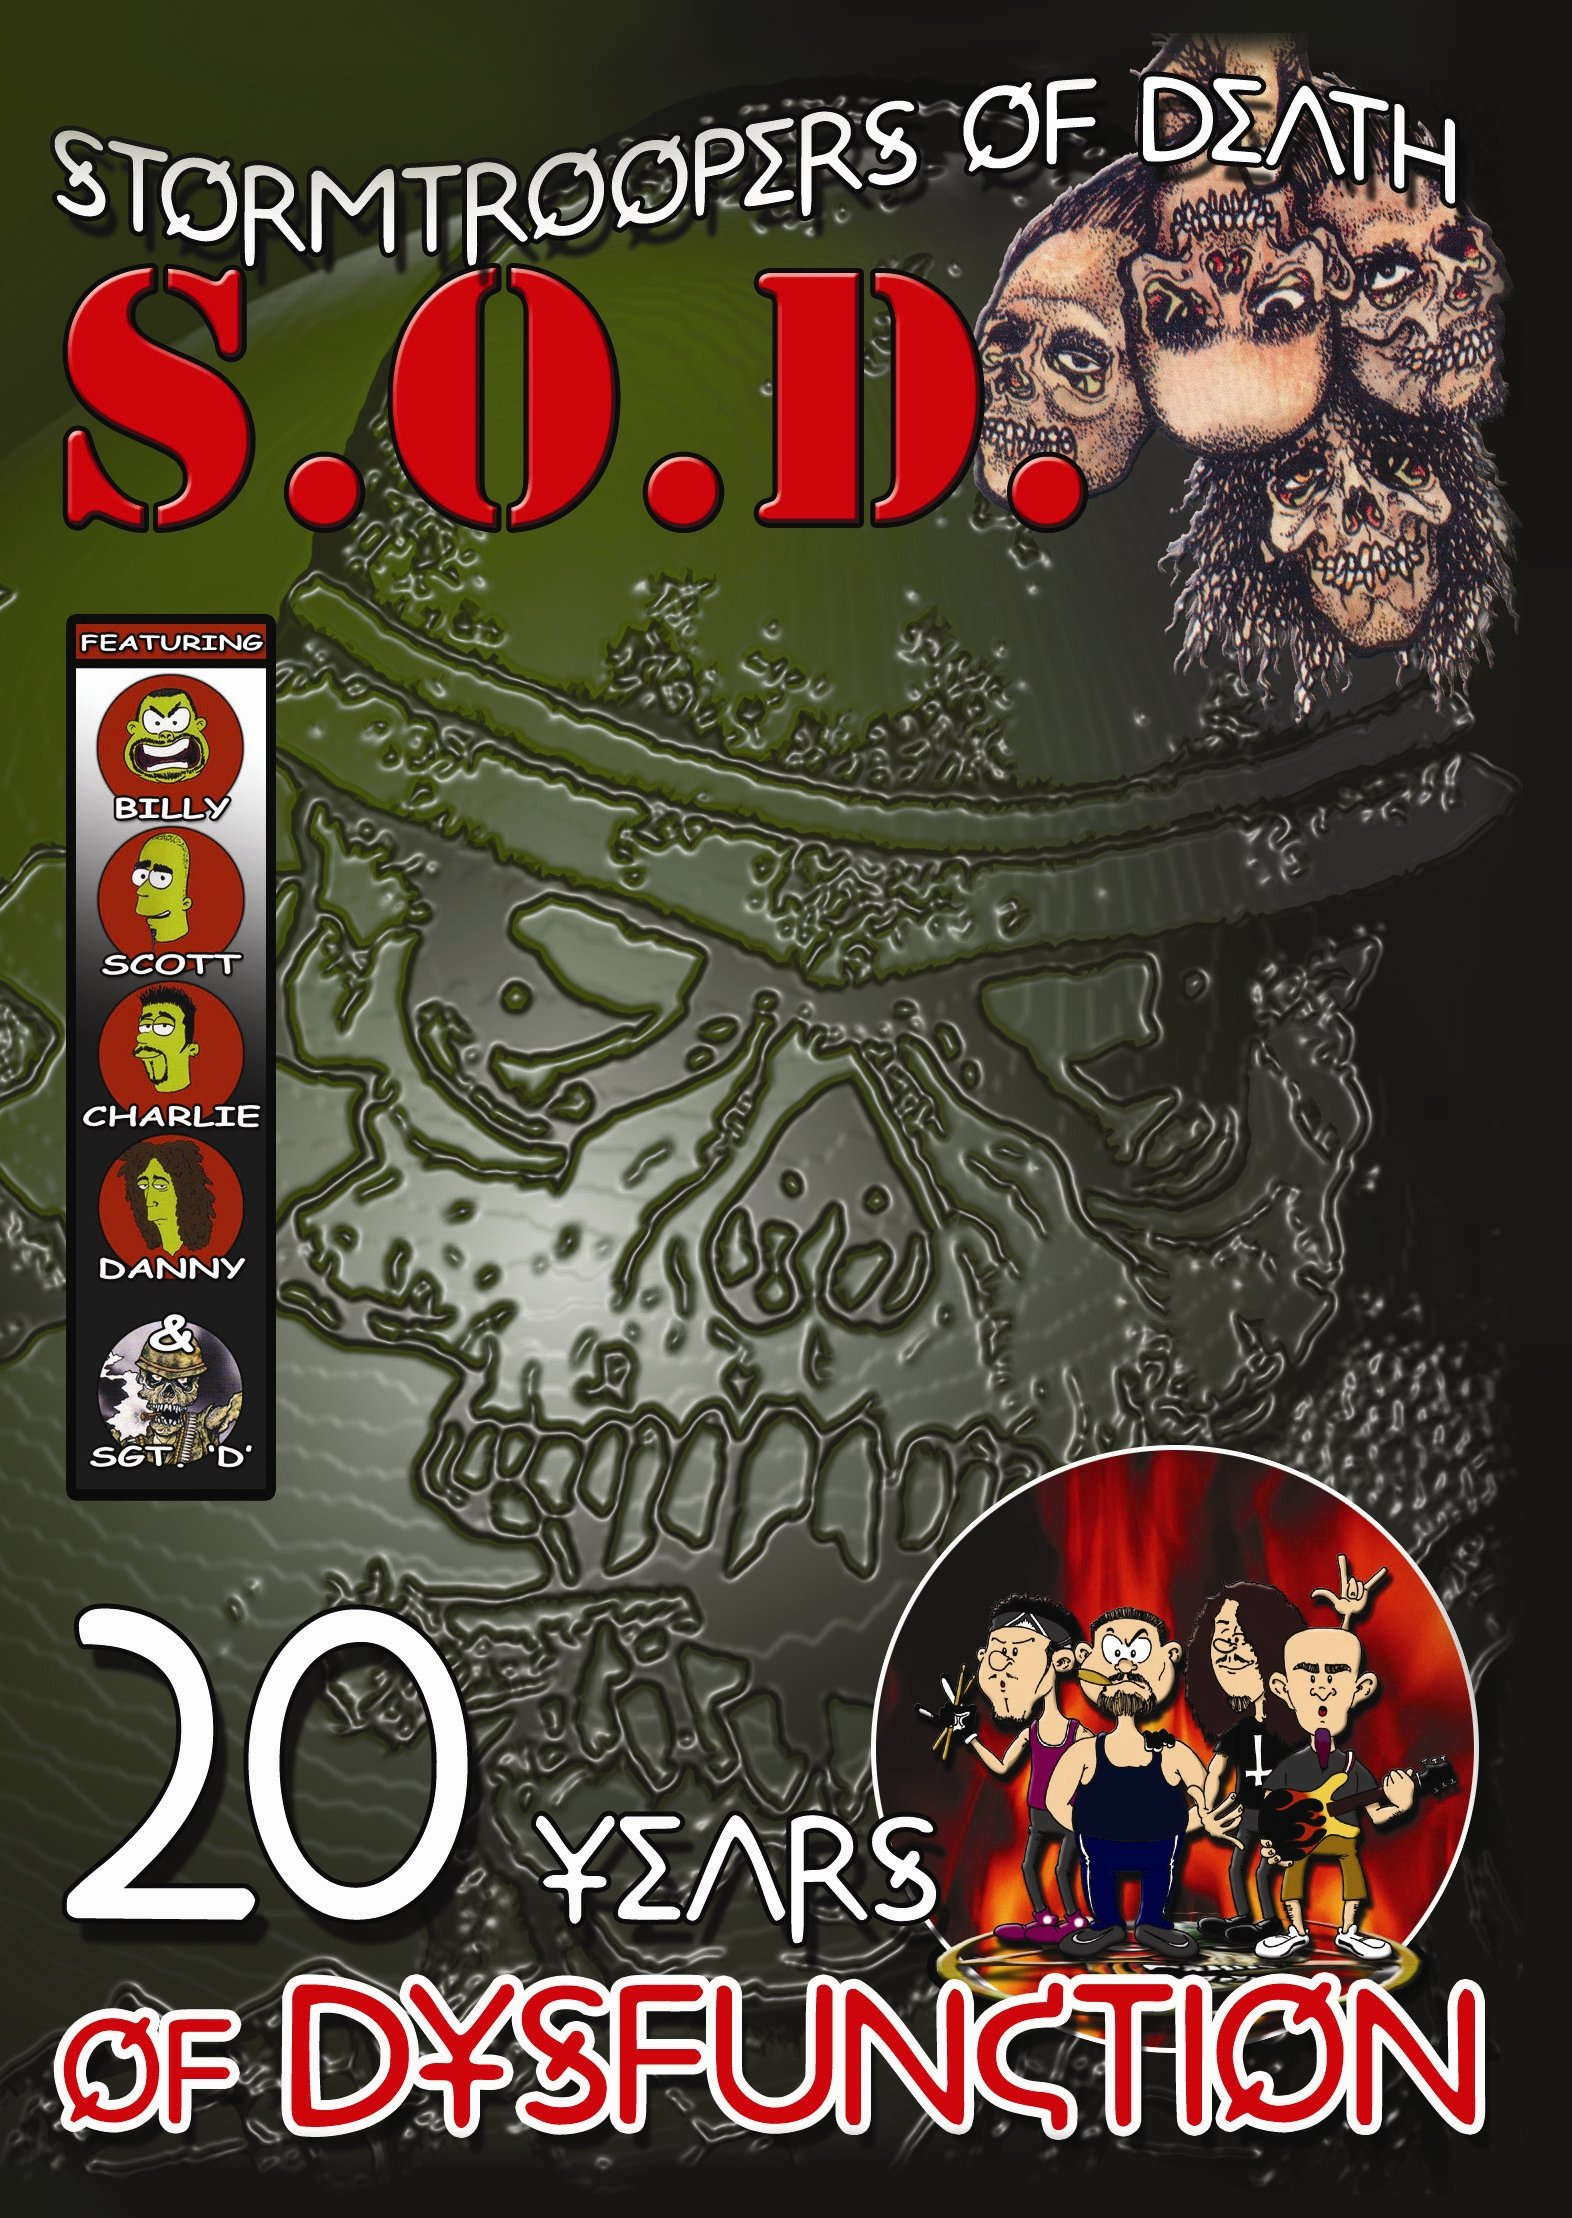 DVD : Stormtroopers of Death - 20 Years Of Dysfunction (Bonus CD, 2PC)